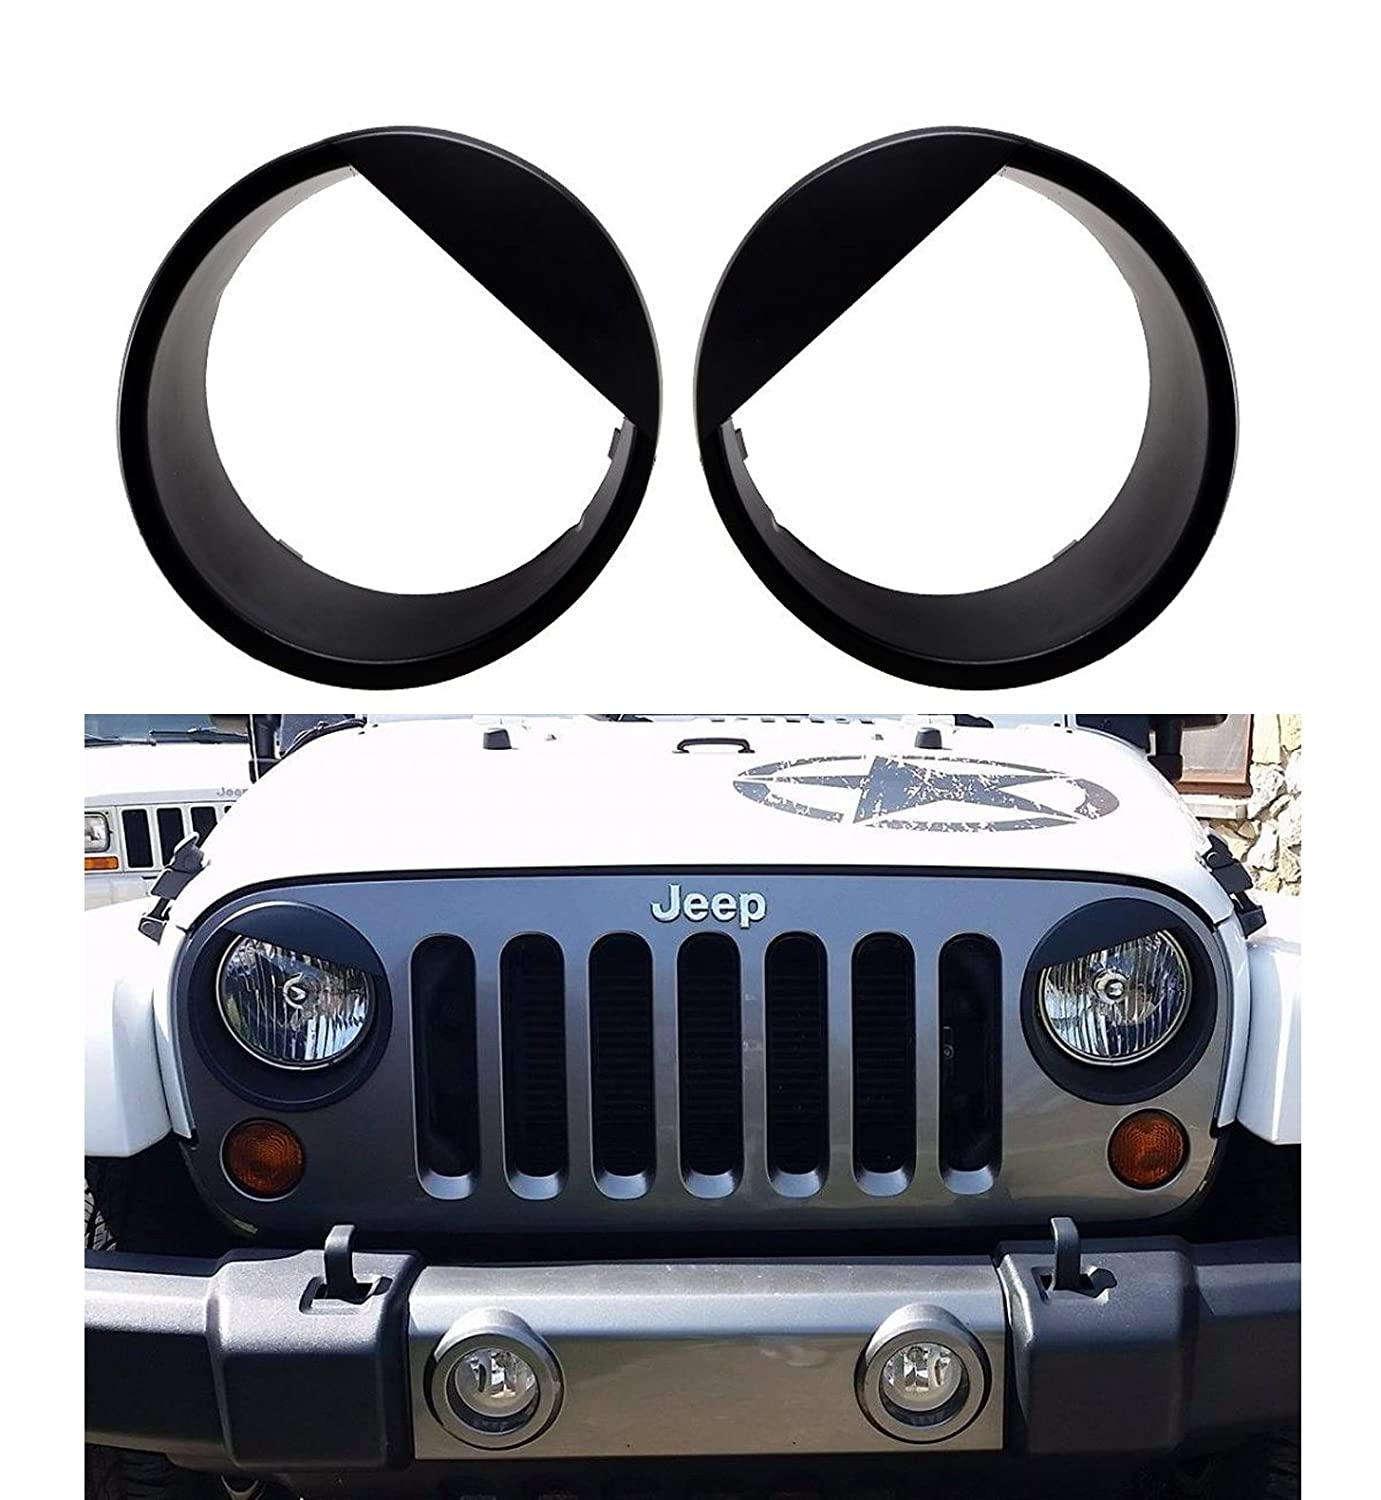 Upgrade Clip in Version Bolaxin Black angry bird style Headlight Trim Head Lamps Cover Ring Trim for 2007-2018 Jeep Wrangler JK /& Wrangler Unlimited